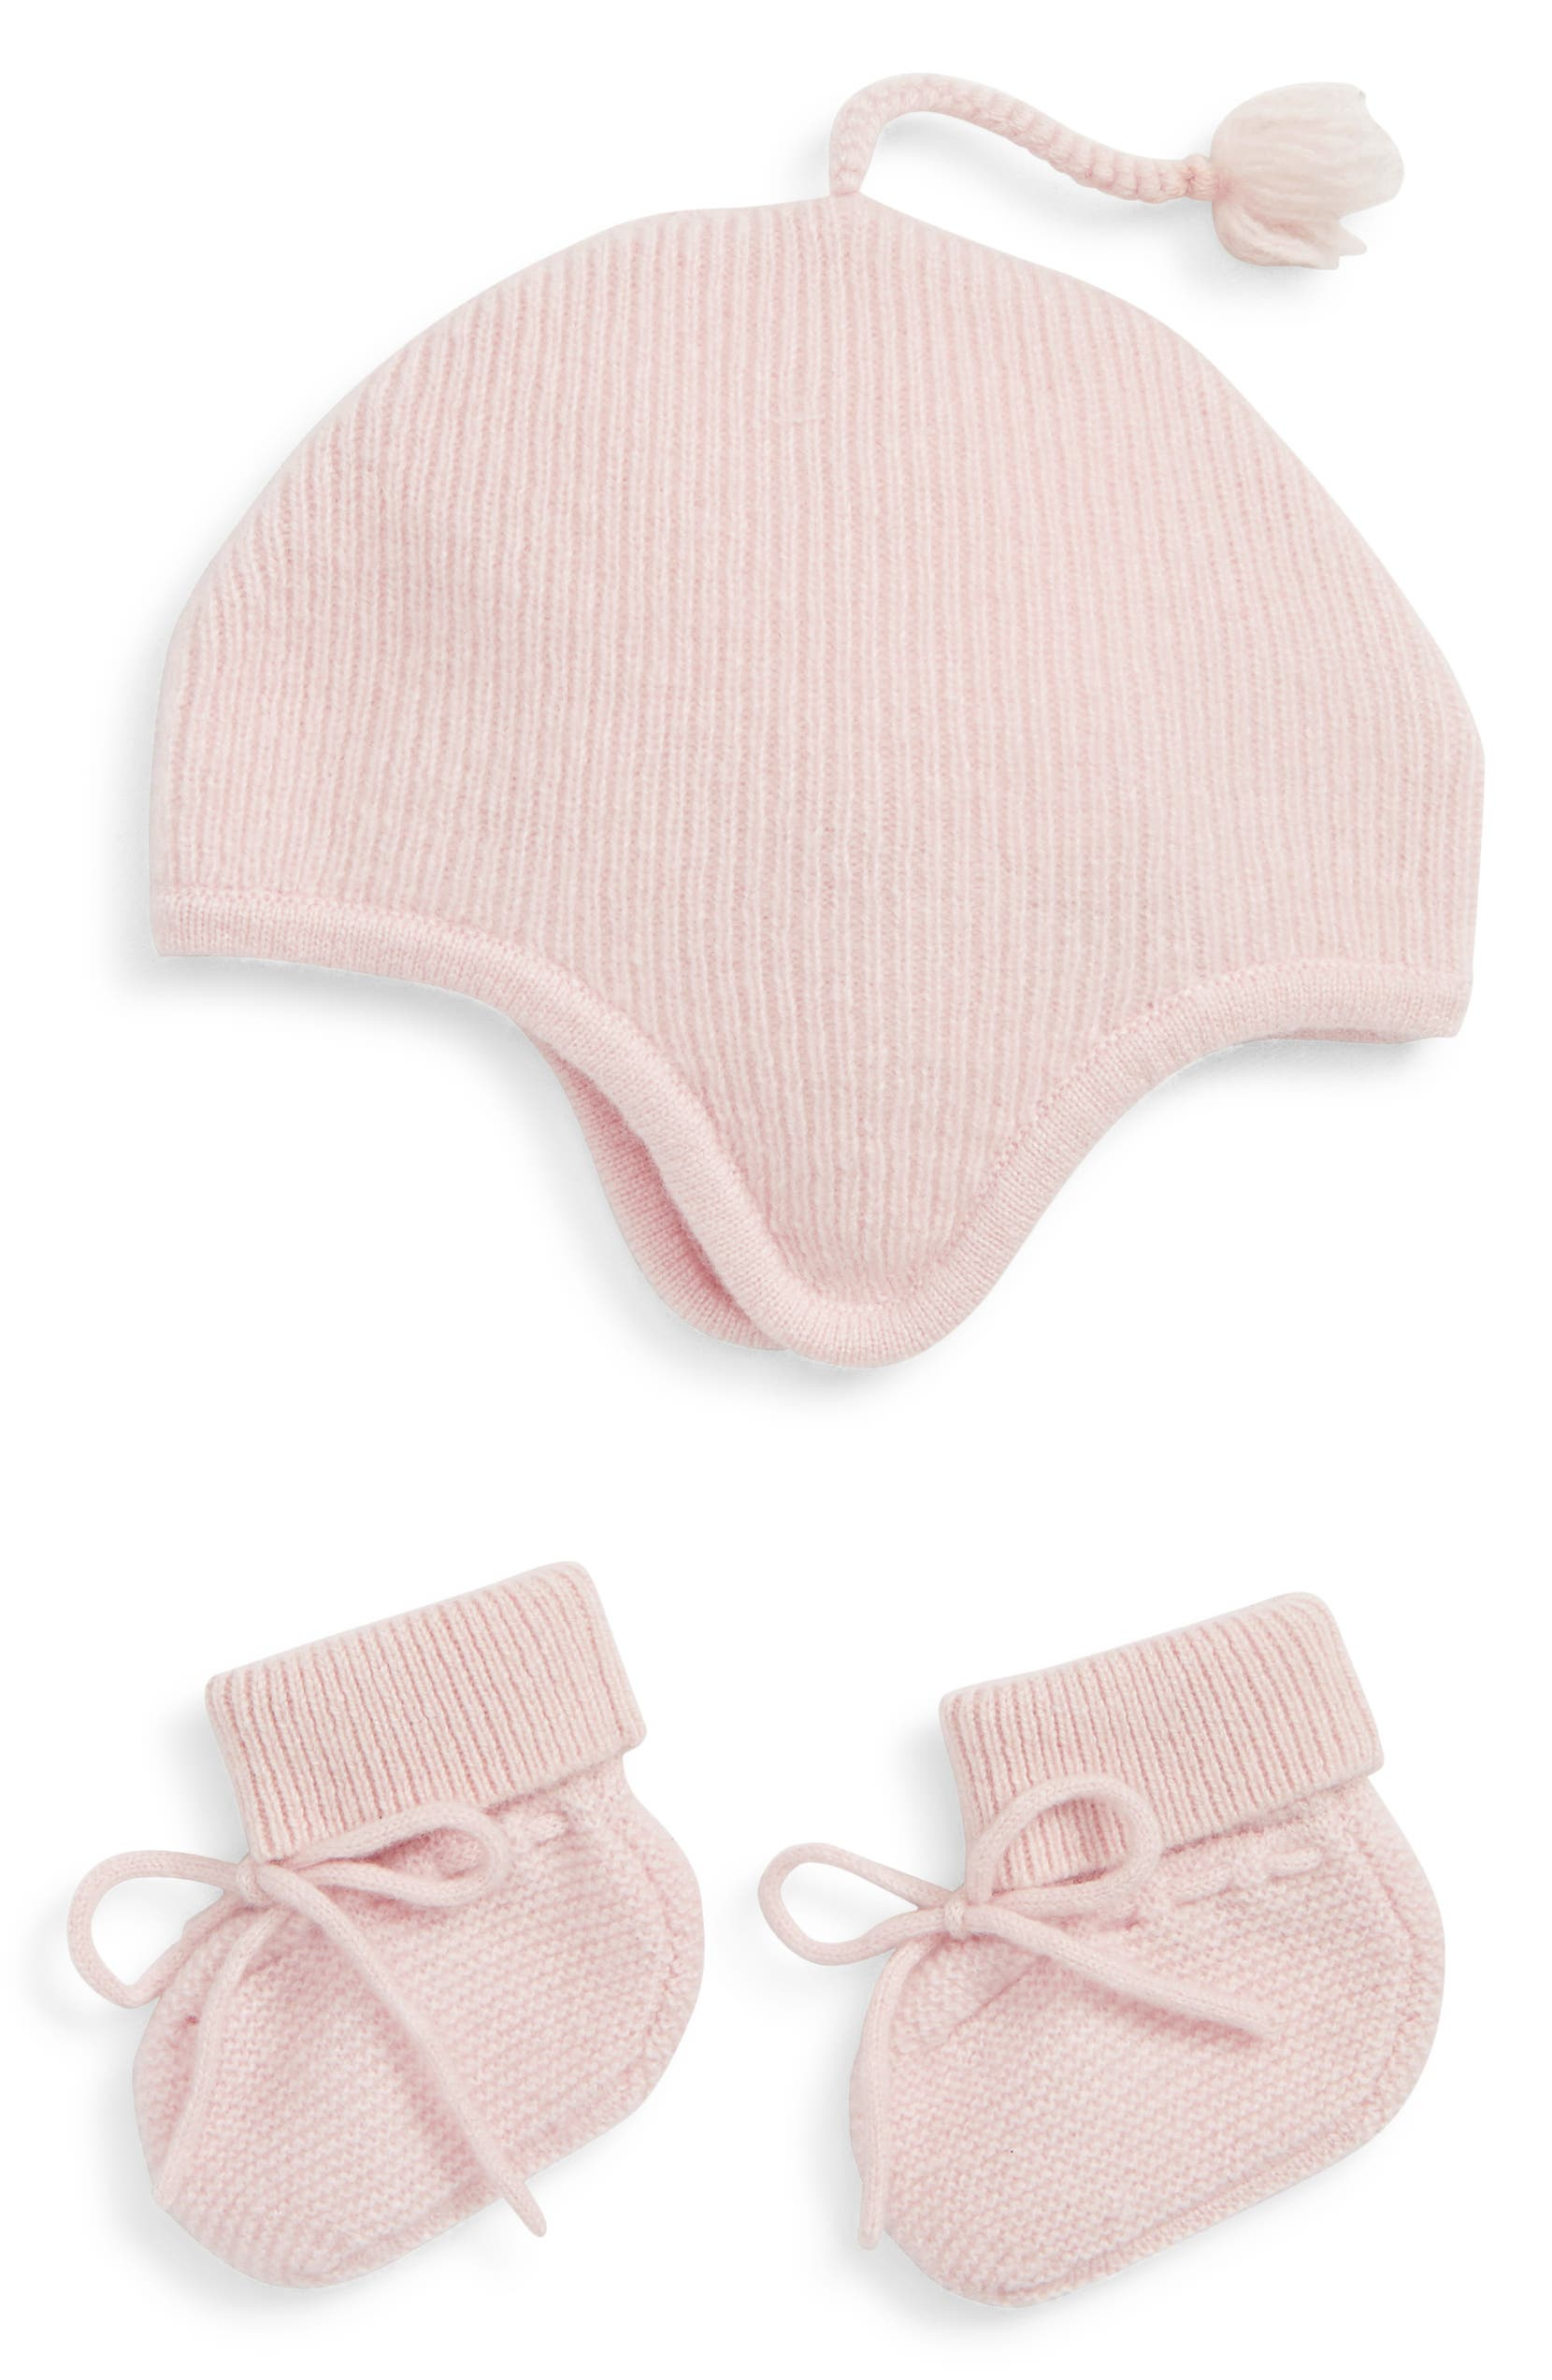 047235eaf Nordstrom Signature Pink Cashmere Hat and Bootie Boxed Gift Set (Baby)